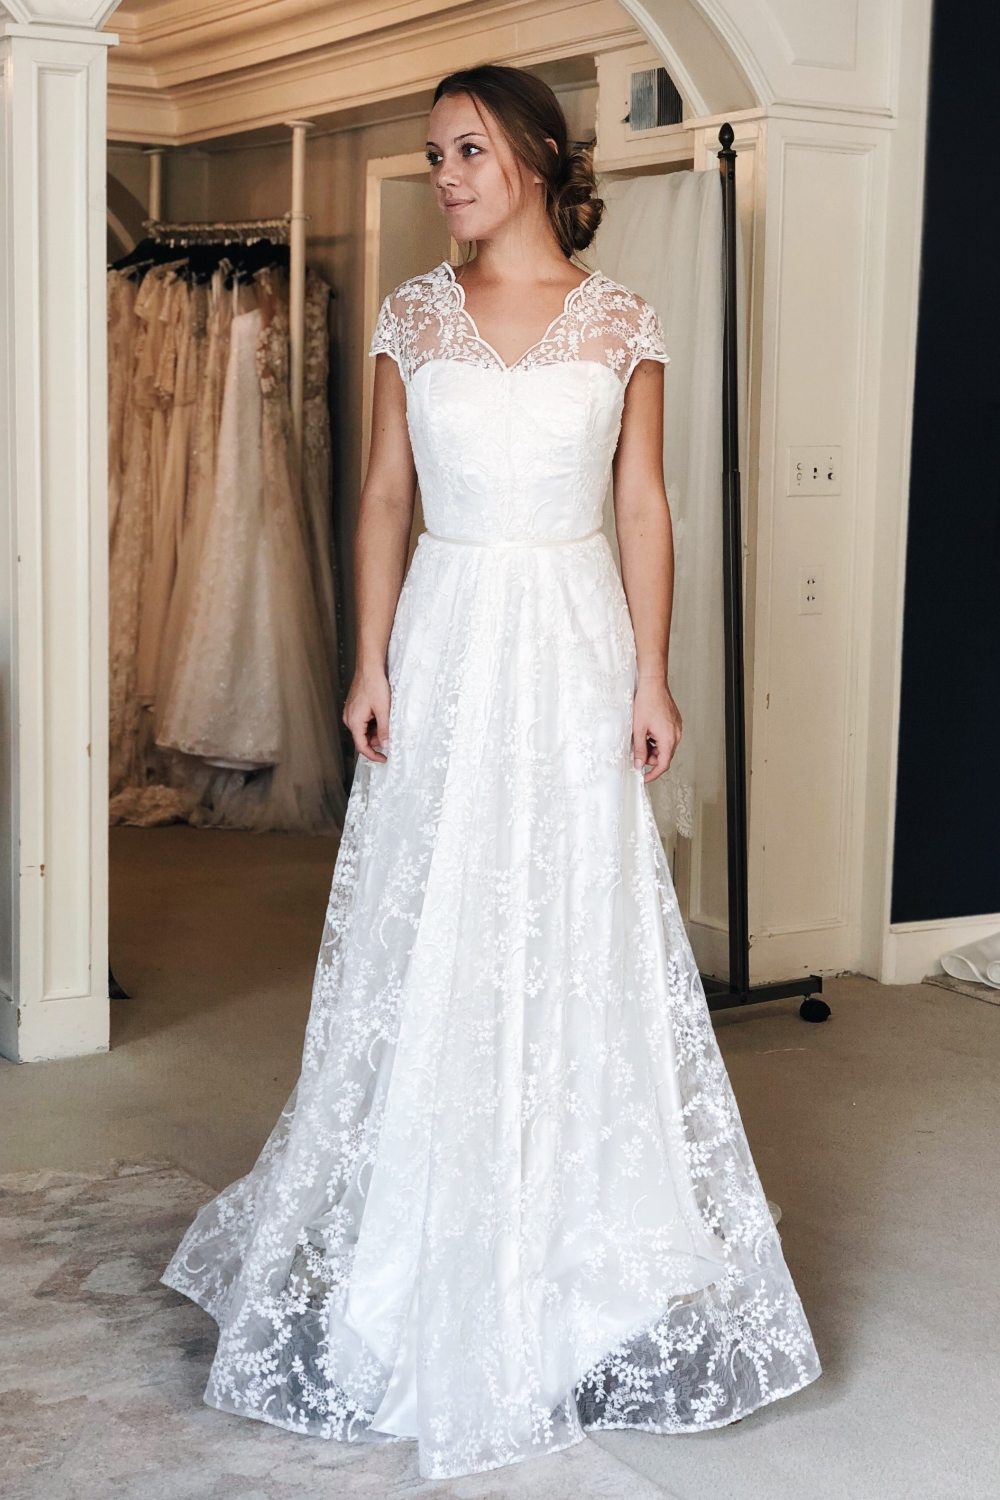 savin london eloise - was: $3287Our price: $2300Sale Price: $1955